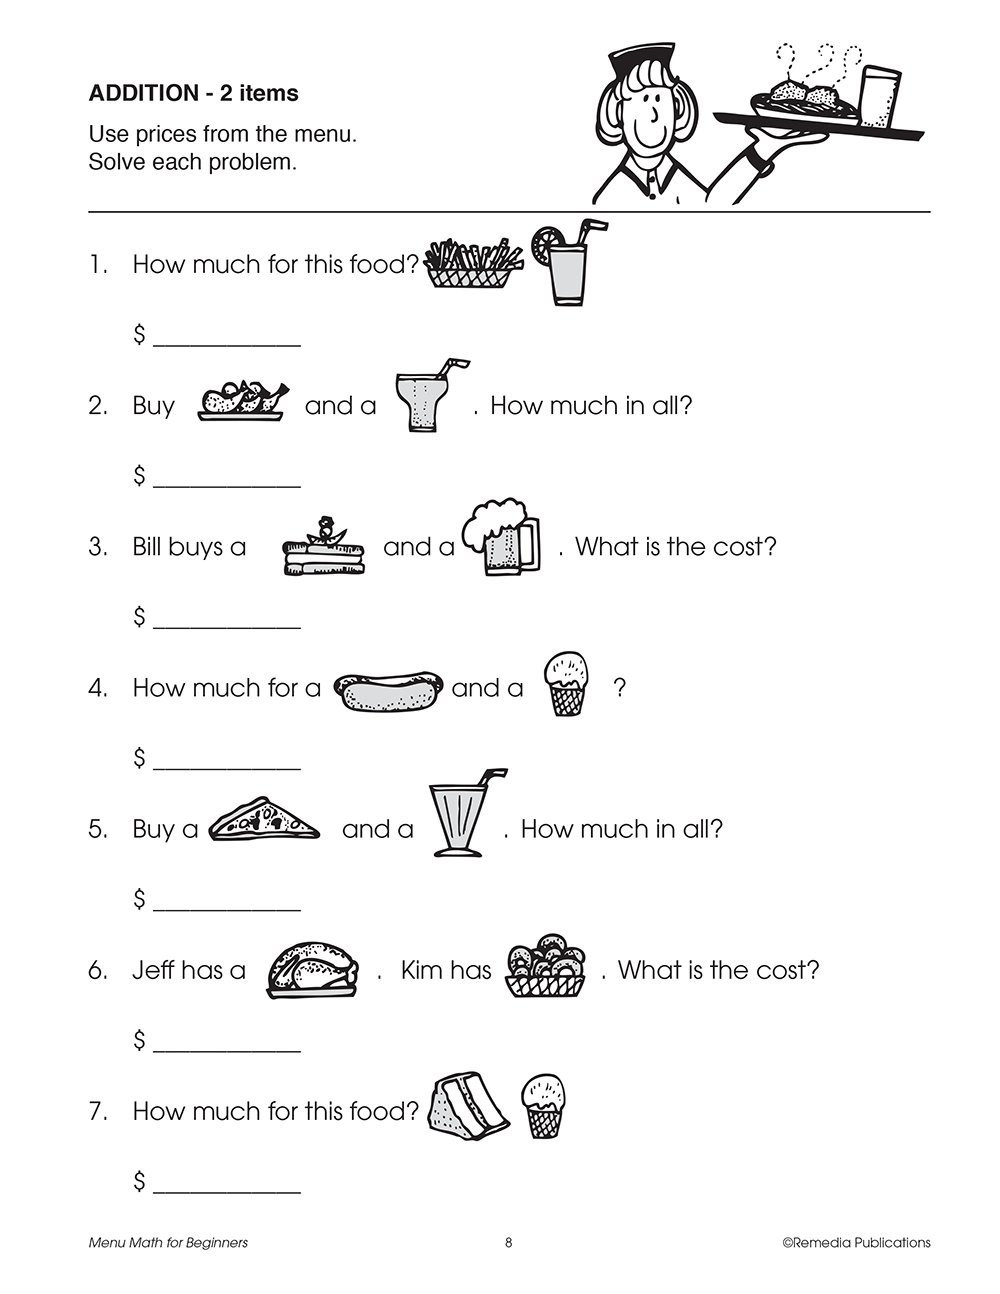 Menu Math Printable Menu Math for Beginners Johnson Barbara